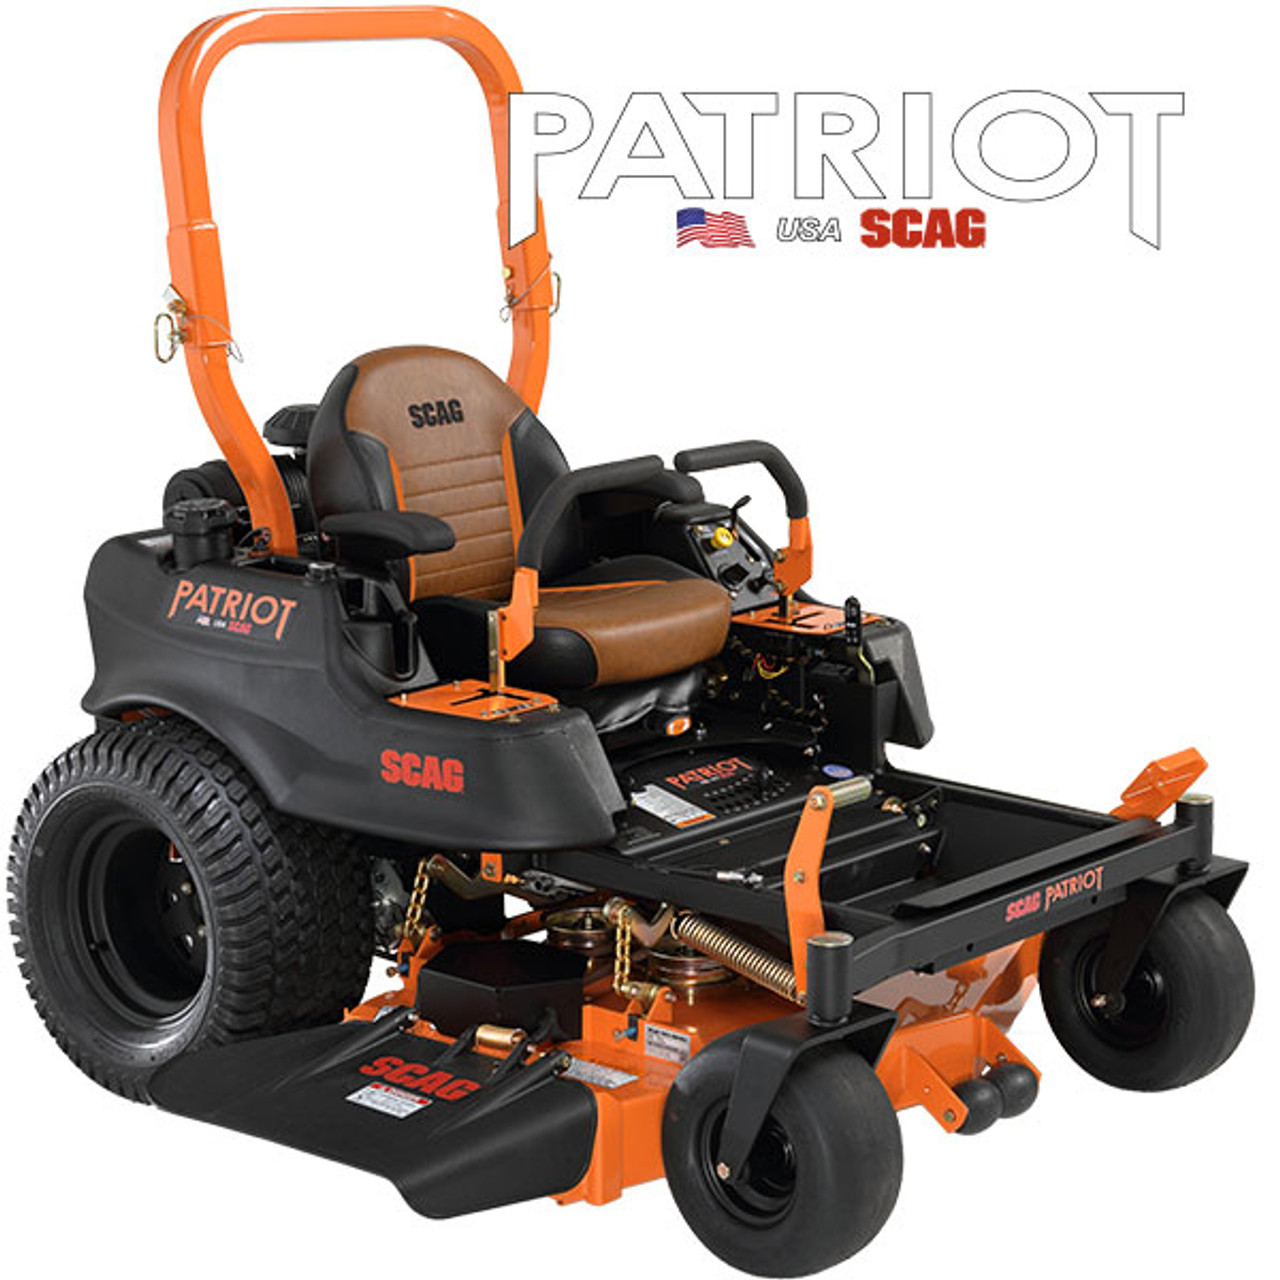 "Scag SPZ52-22FX 52"" Cutter Deck Zero-Turn Riding Lawn Mower w/ 22 hp Kawasaki FX691 Engine Image"